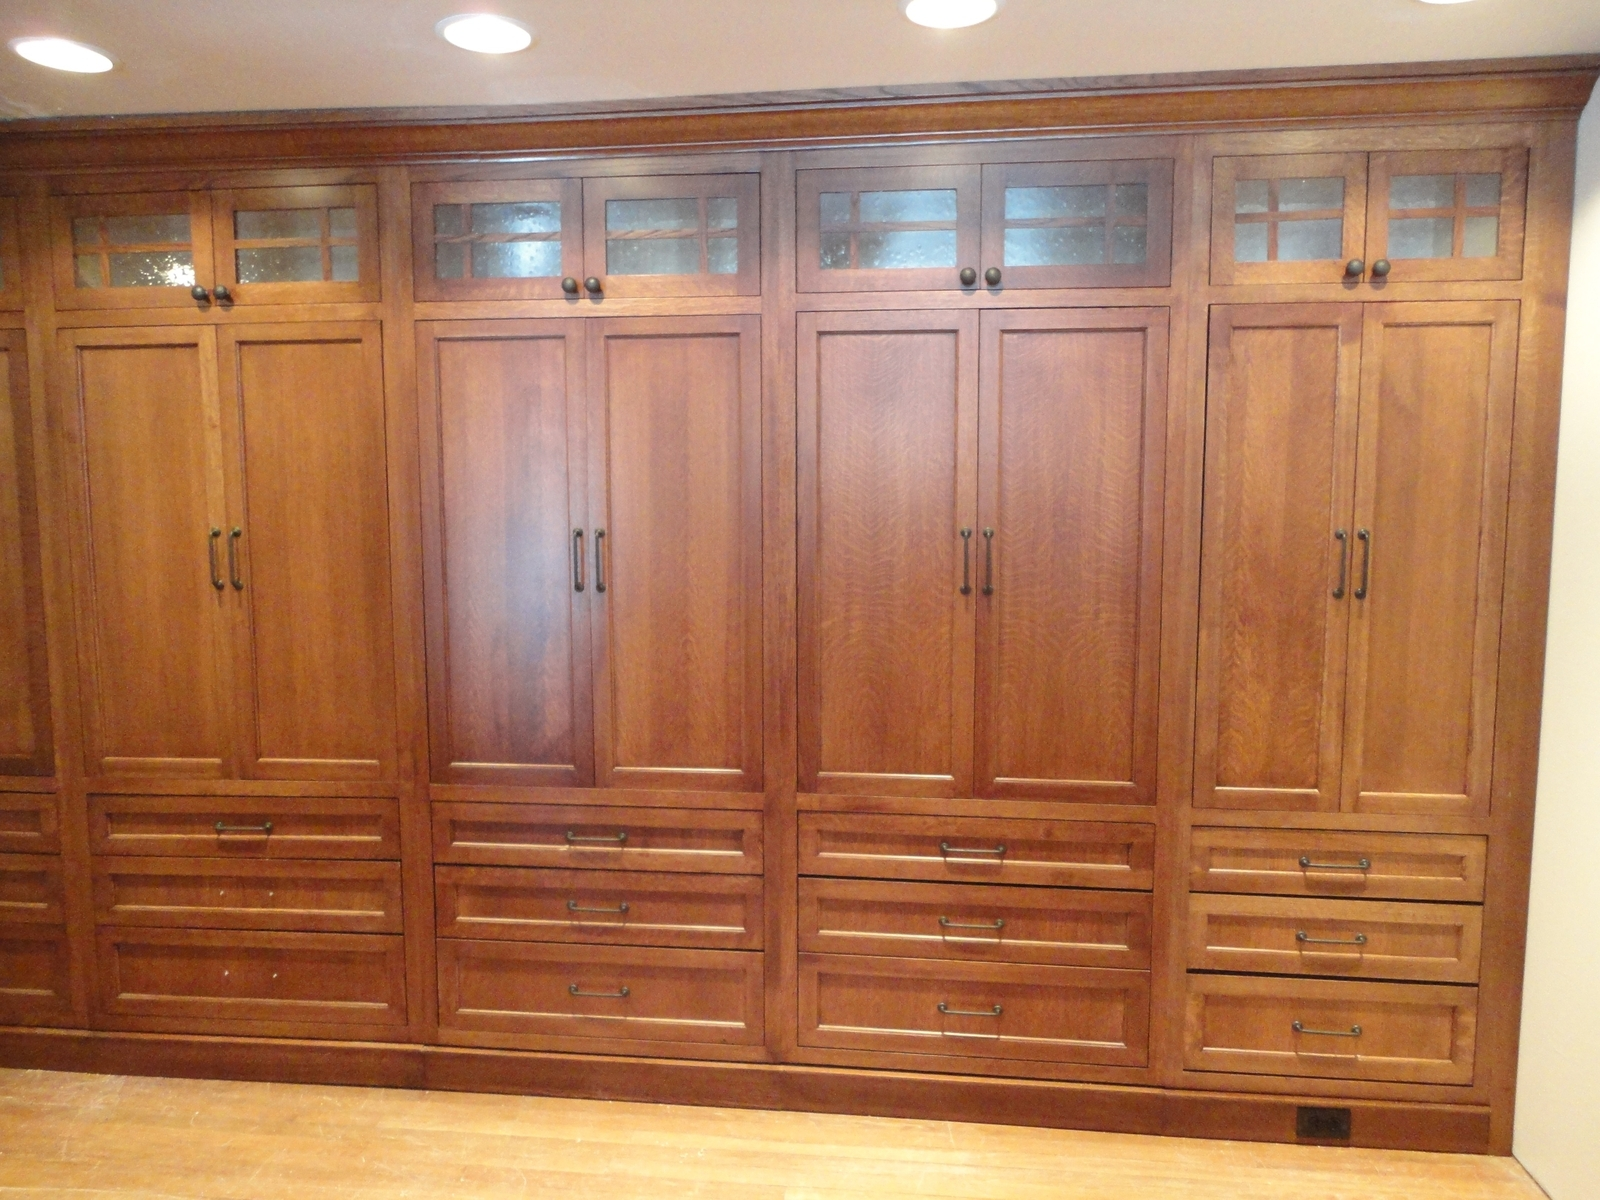 Wardrobe Closet Cabinet With Regard To Solid Wood Built In Wardrobes (Photo 14 of 15)